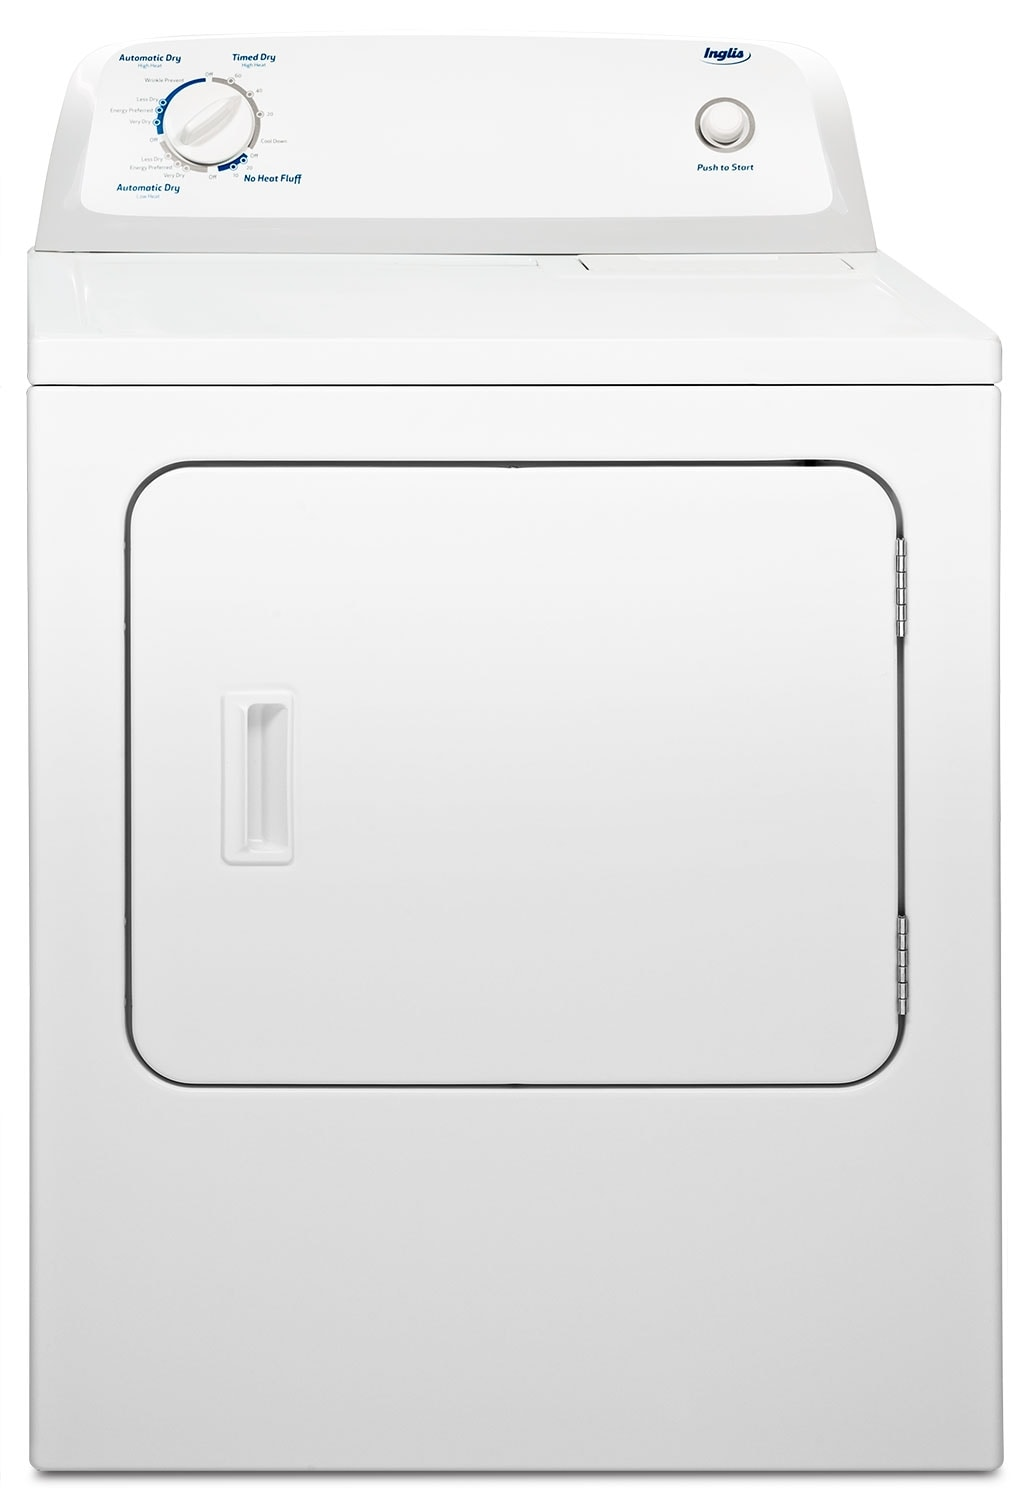 Washers and Dryers - Inglis 6.5 Cu. Ft. Electric Dryer - White